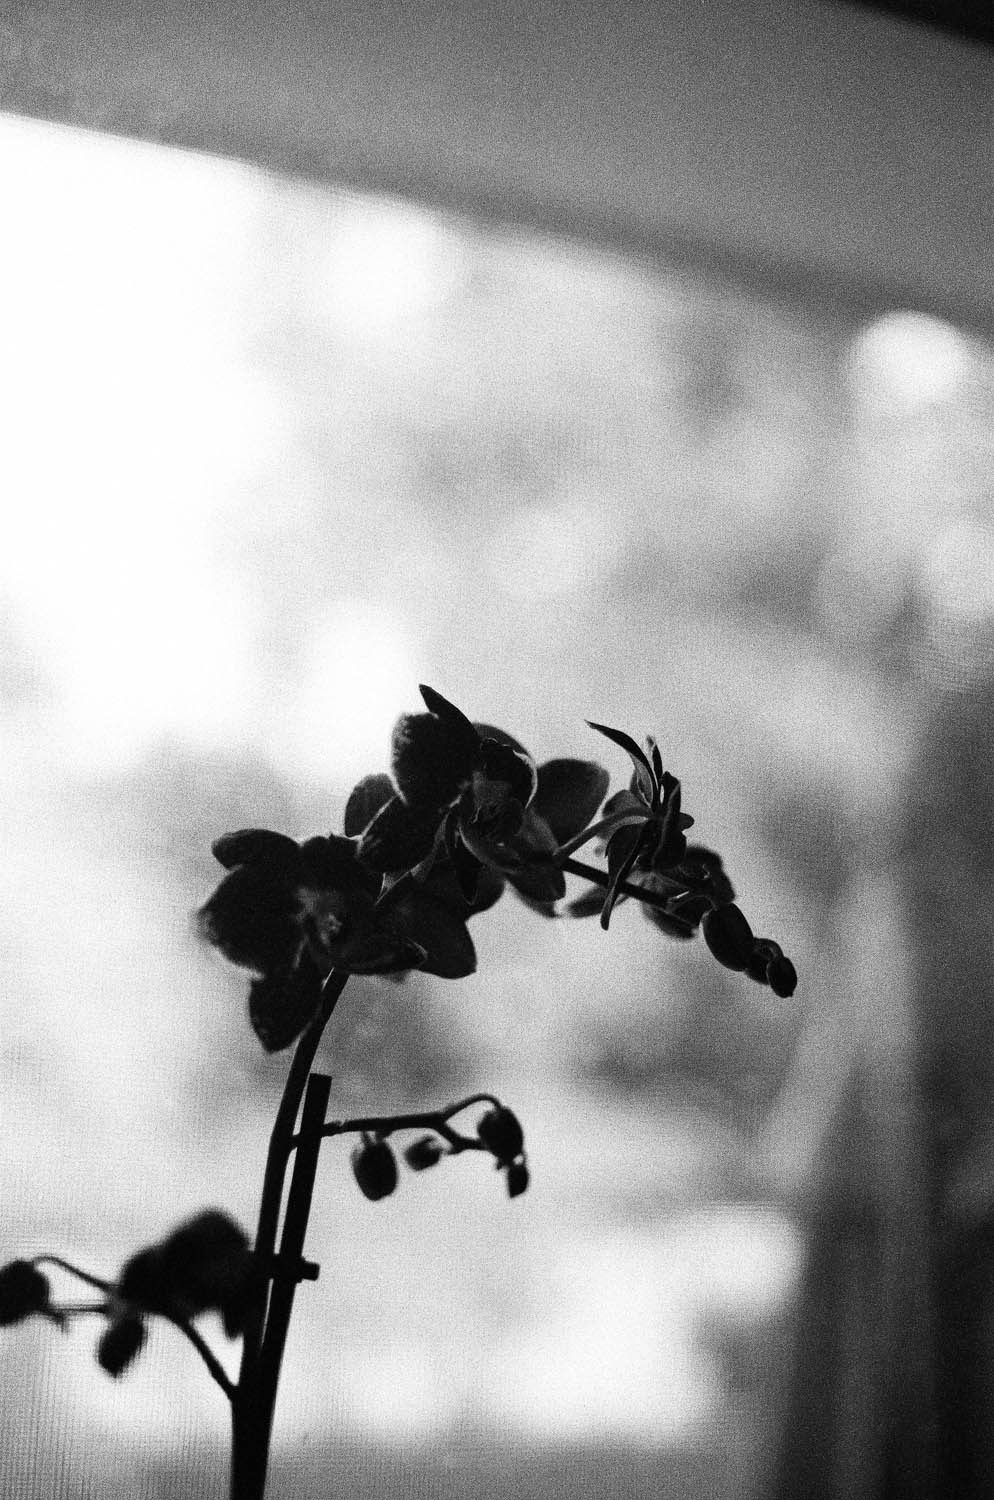 A silhouette of an orchid. Shot at 3200, and developed at 3200 by the Darkroom.